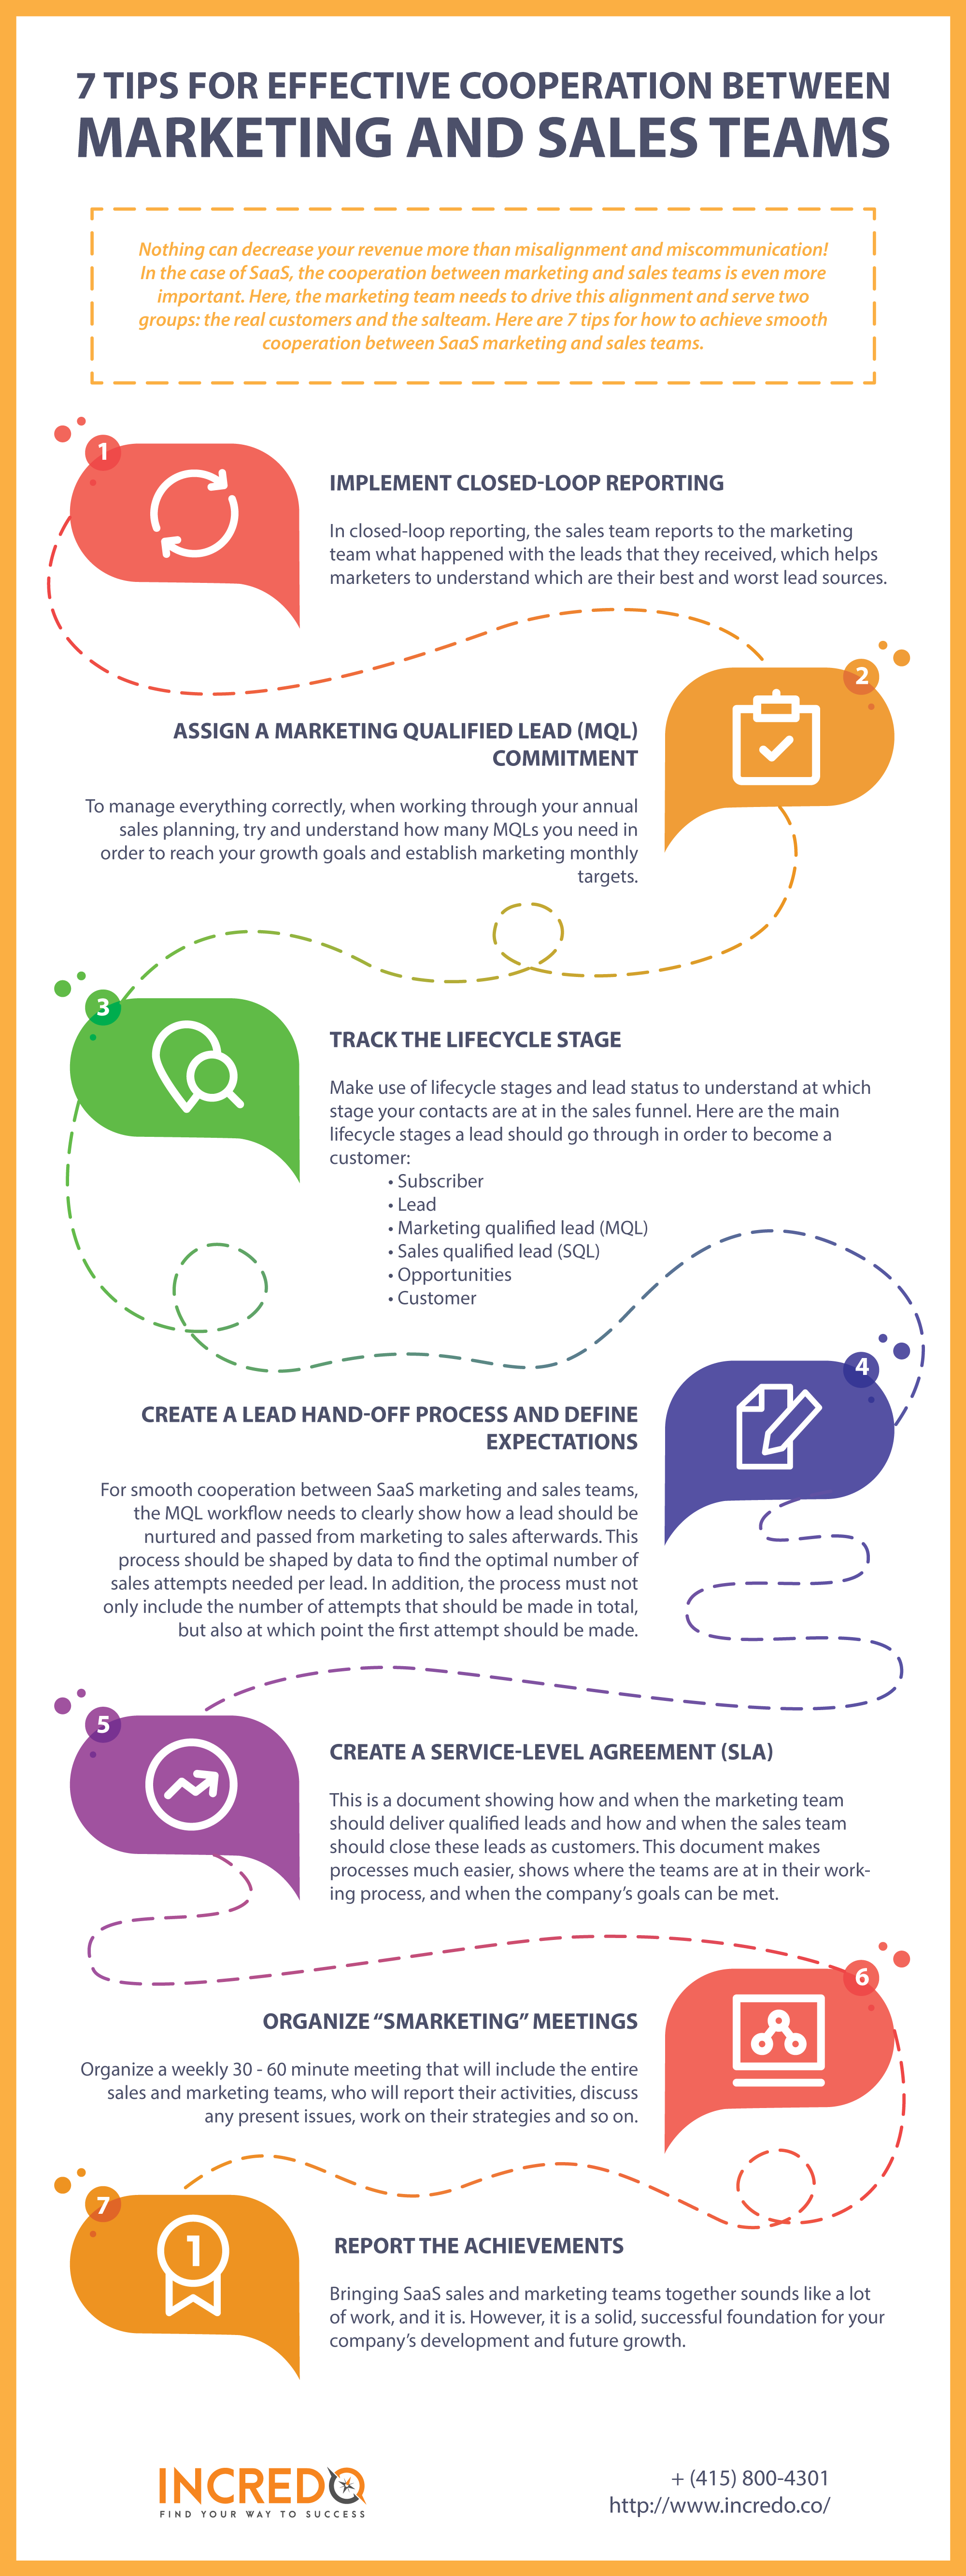 7 tips for effective cooperation between marketing and sales teams.png